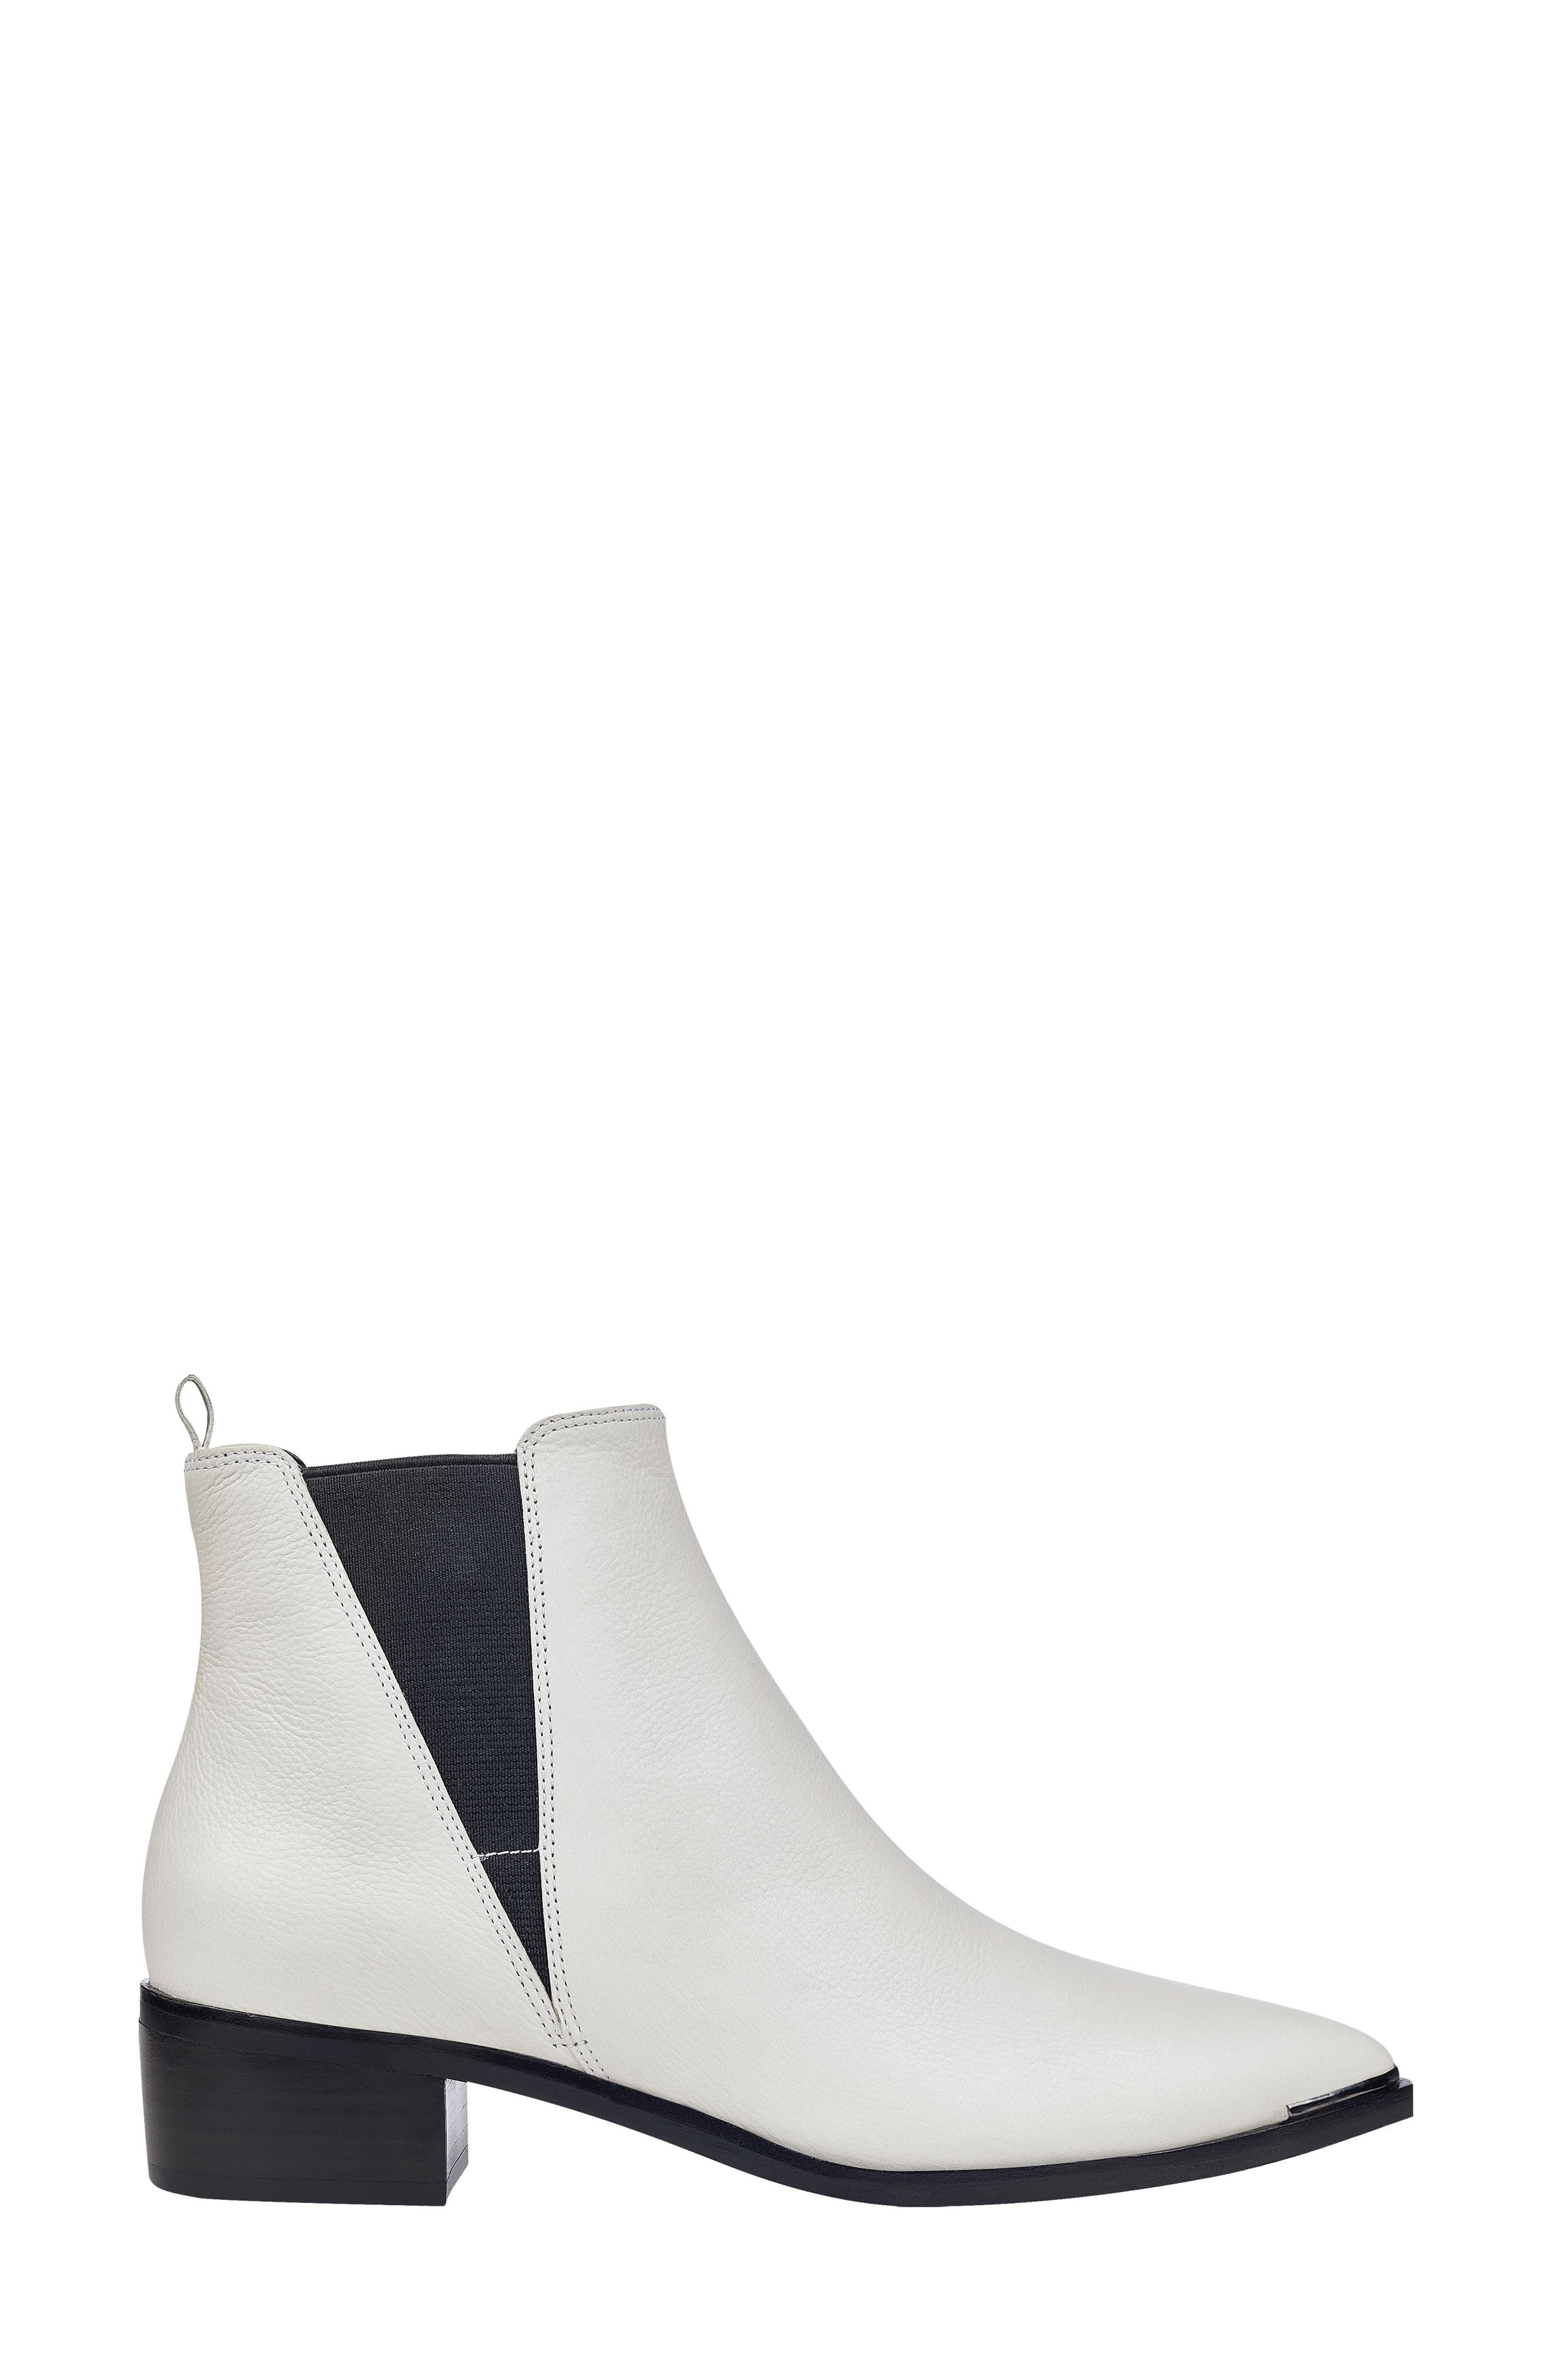 'Yale' Chelsea Boot,                             Alternate thumbnail 6, color,                             Ivory Leather